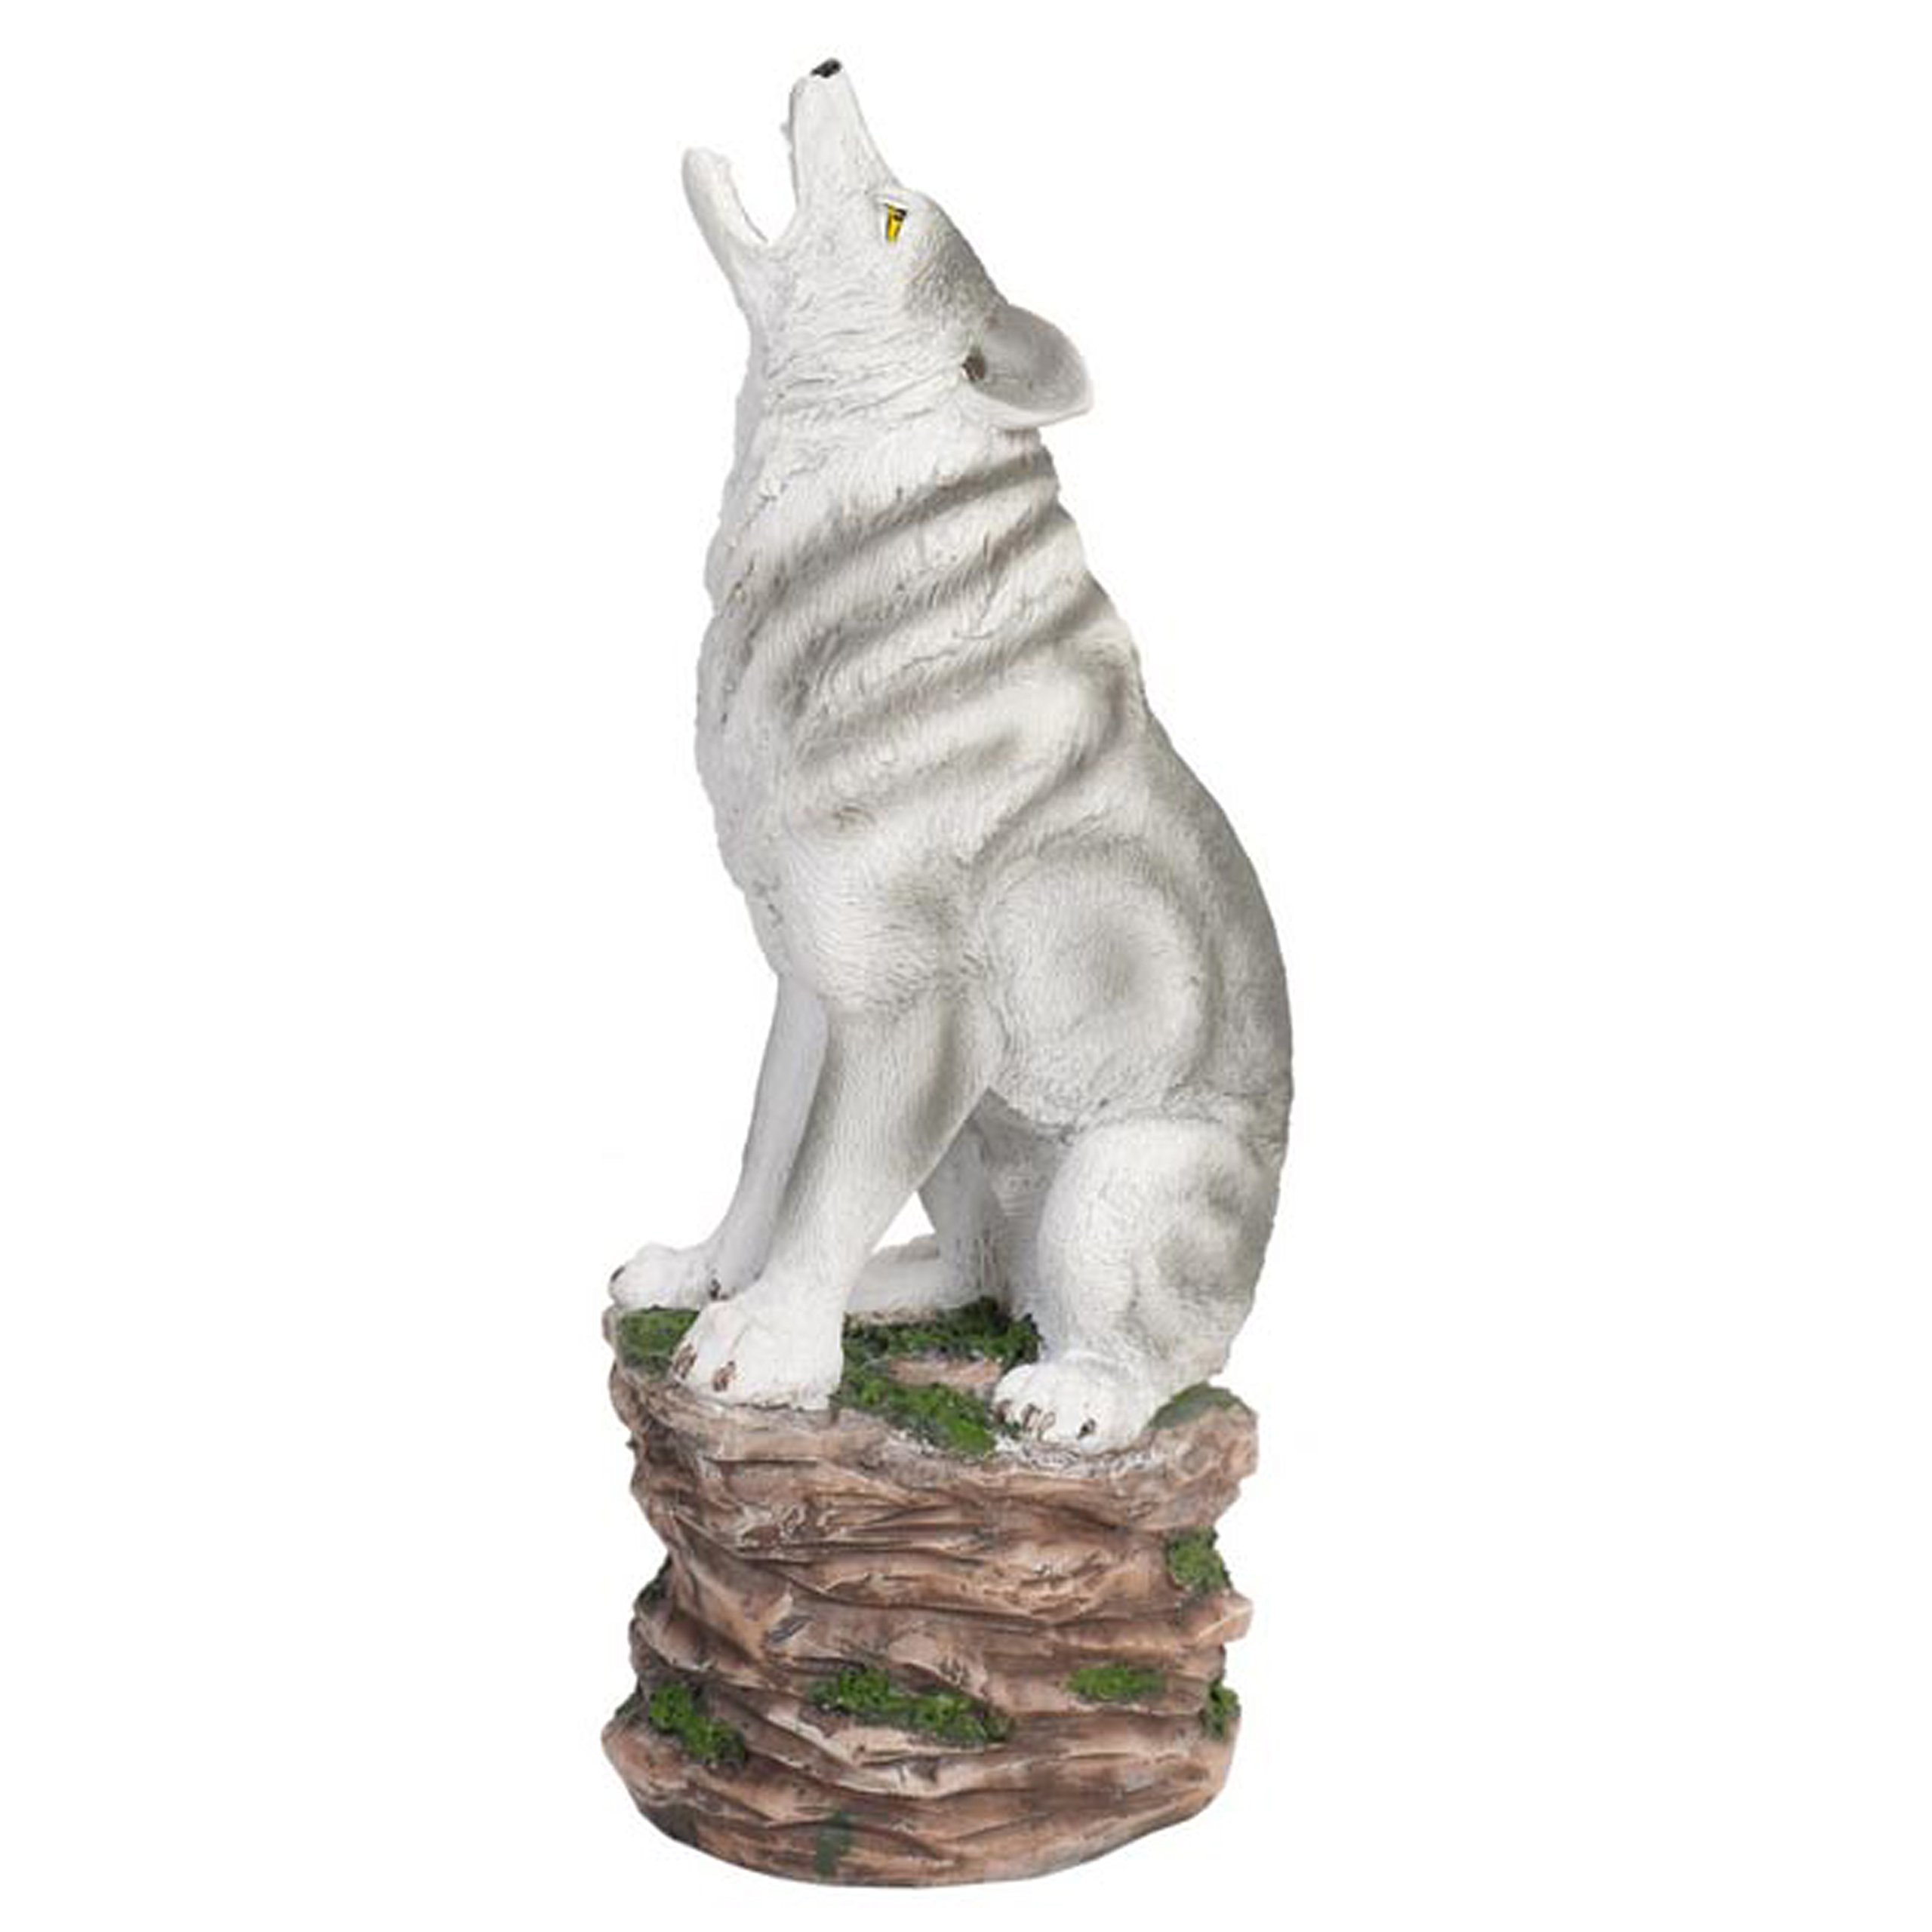 Hosley 12'' High Resin Wolf Incense Burner. Ideal for Spa and Aromatherapy, Suggested for use Brand Essential Oils and Fragrance Oils. P1